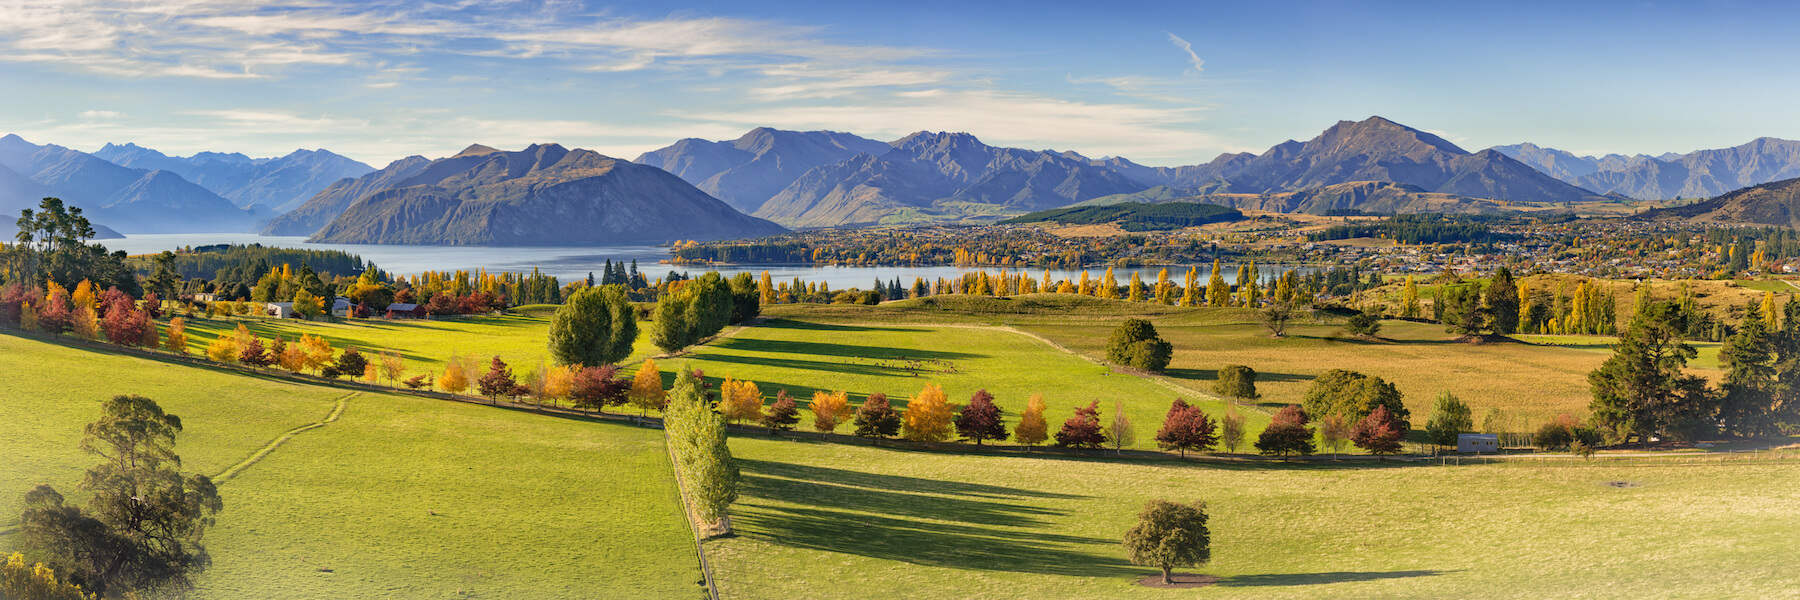 An Autumn View over Wanaka